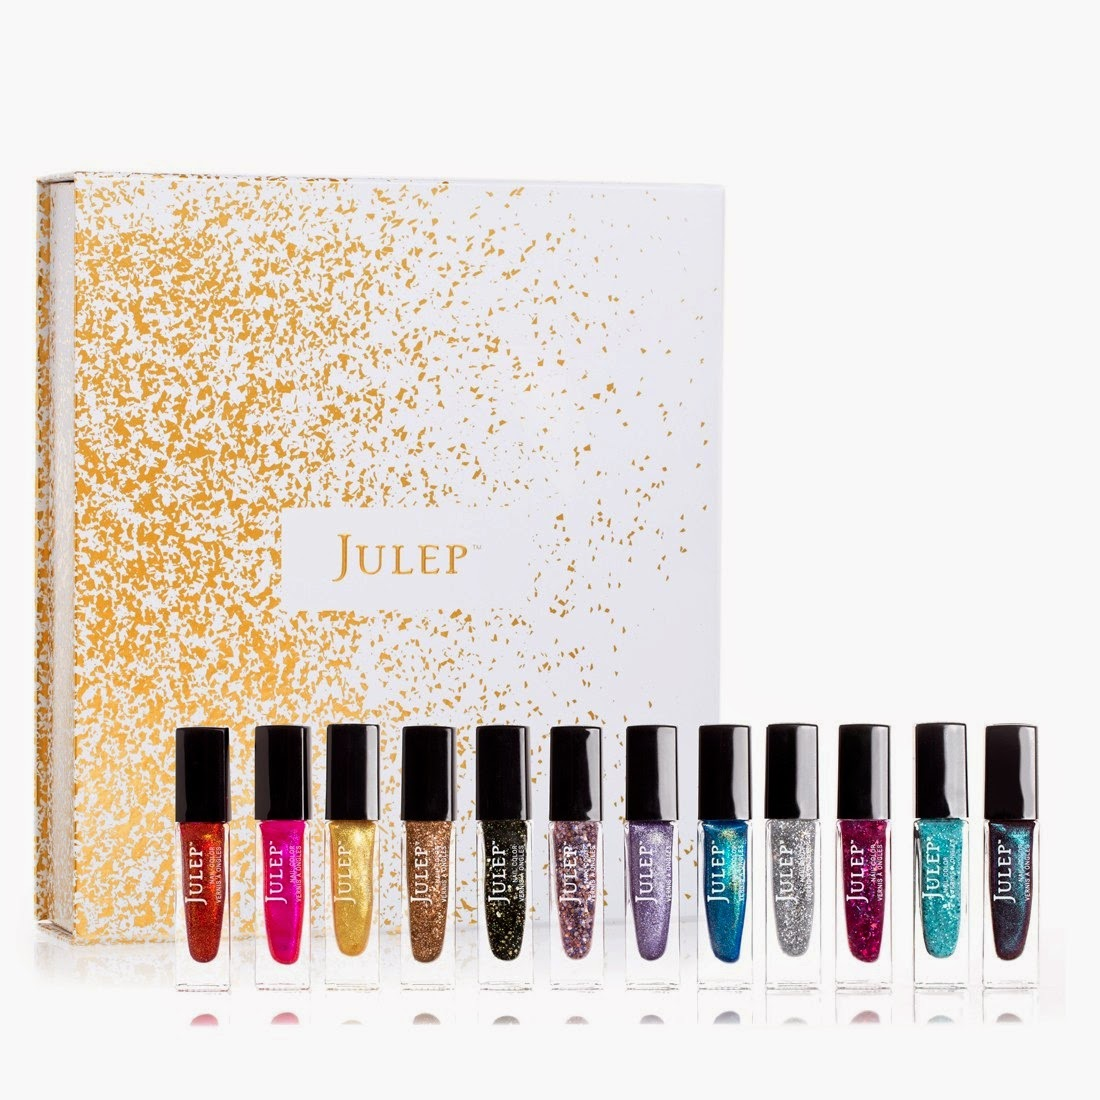 Give the gift of beauty. Julep's Gem Collection.